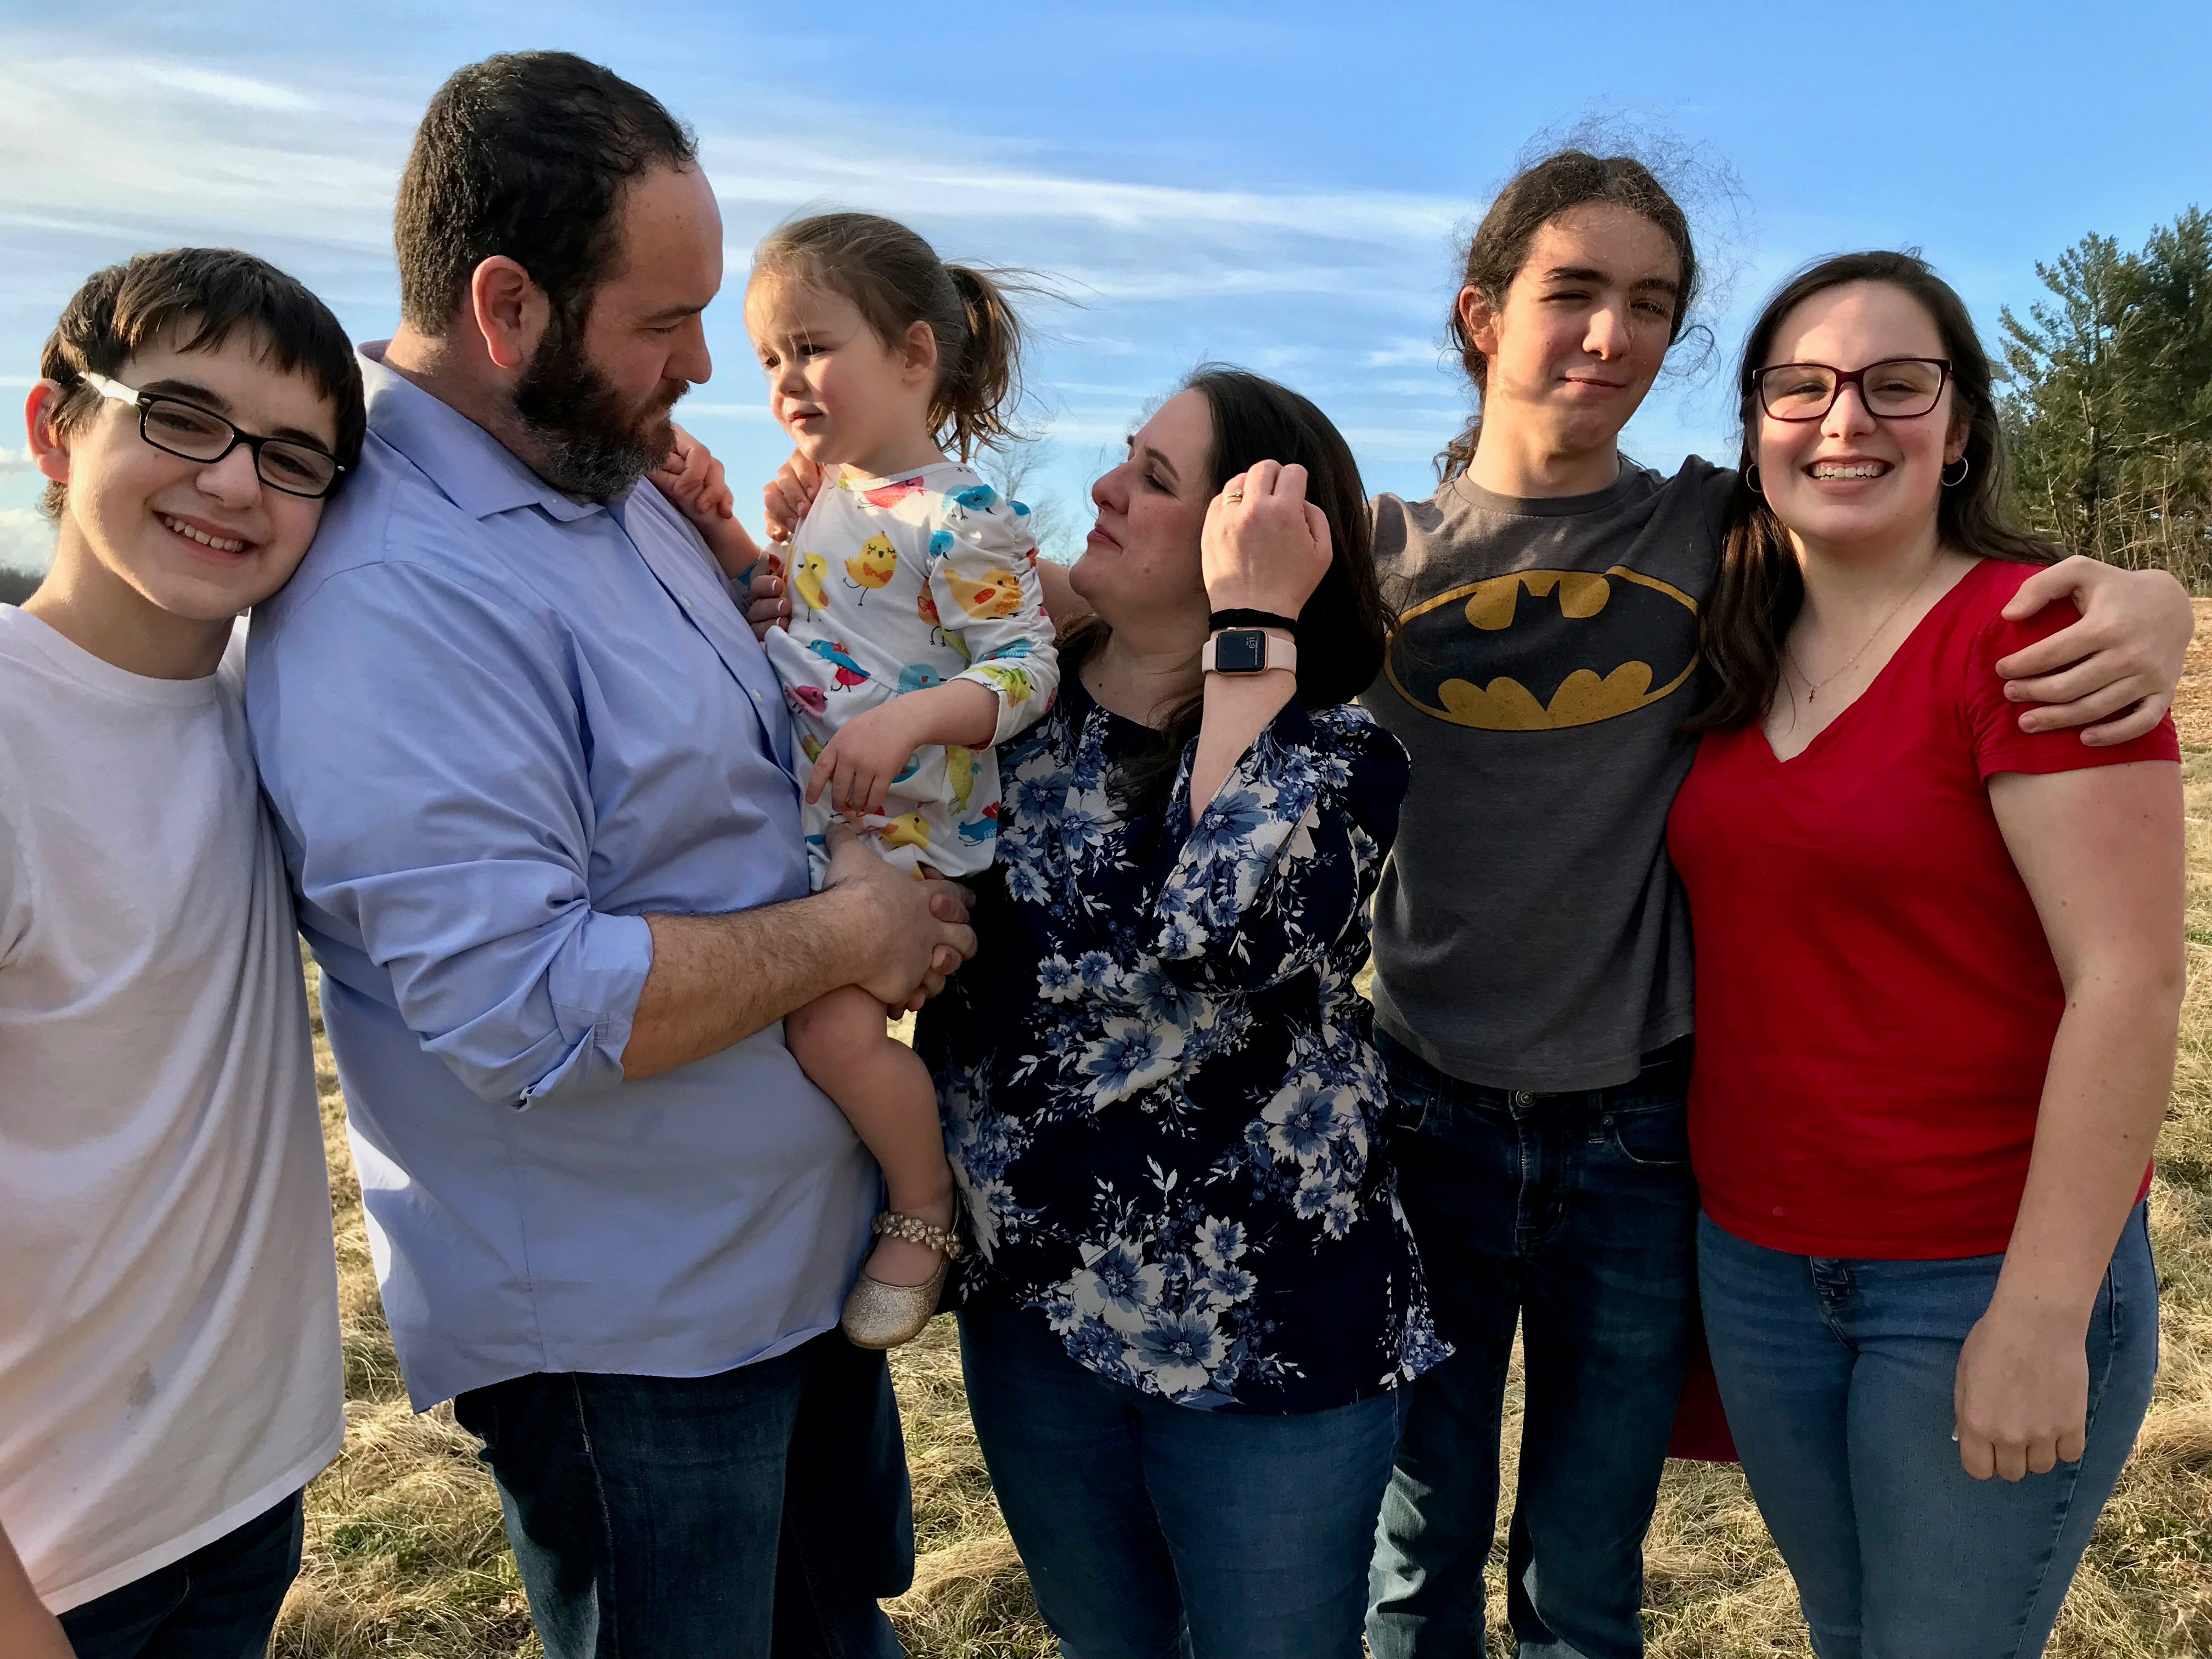 The Bussey family: Wyatt, Brent, Rebecca, Amy, Carter and Julia Bussey in the backyard of their home in Ladd, Virginia, on Friday, March 15, 2019. Three-year-old Rebecca Bussey has the rare disease Systemic Juvenile Idiopathic Arthritis.